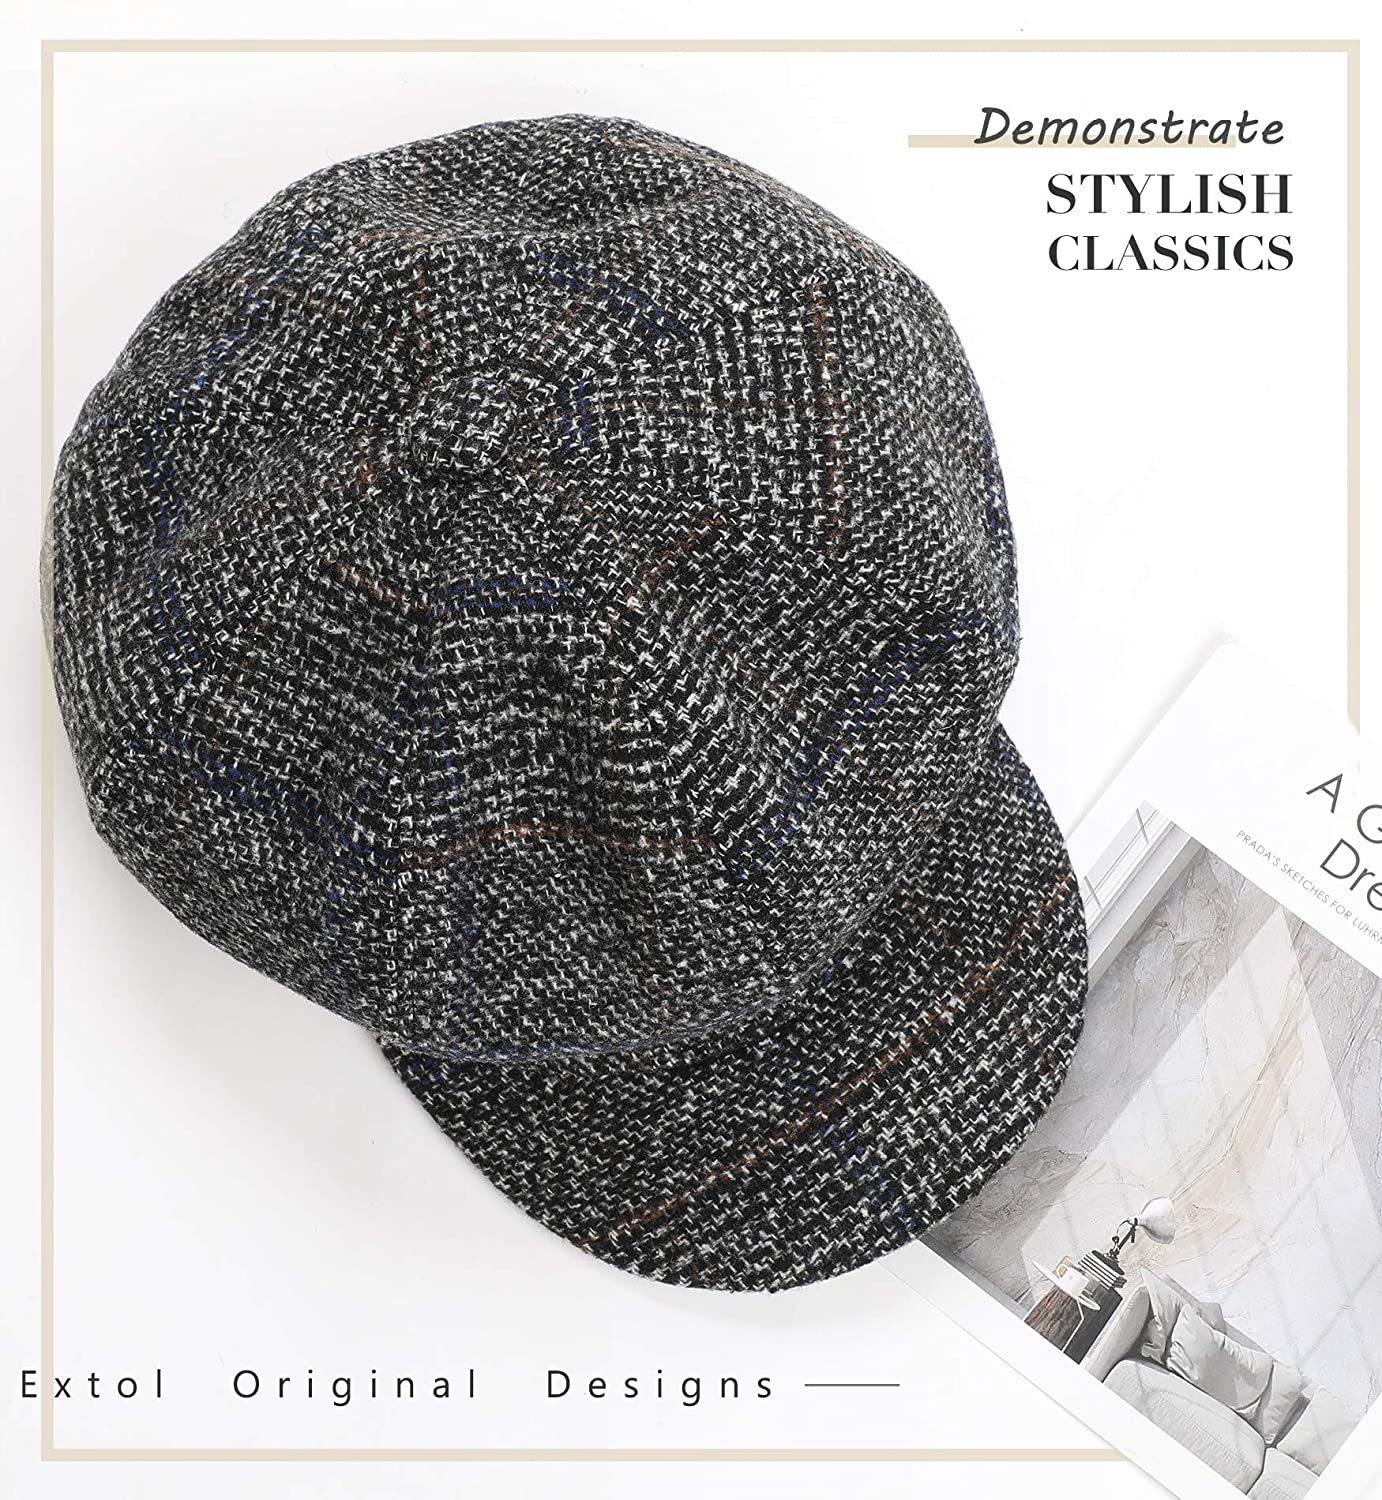 4c329531db4 Amazon.com  Sumolux Women Beret Newsboy Hat French Cotton Cap Classic  Autumn Spring Winter Hats  Sports   Outdoors